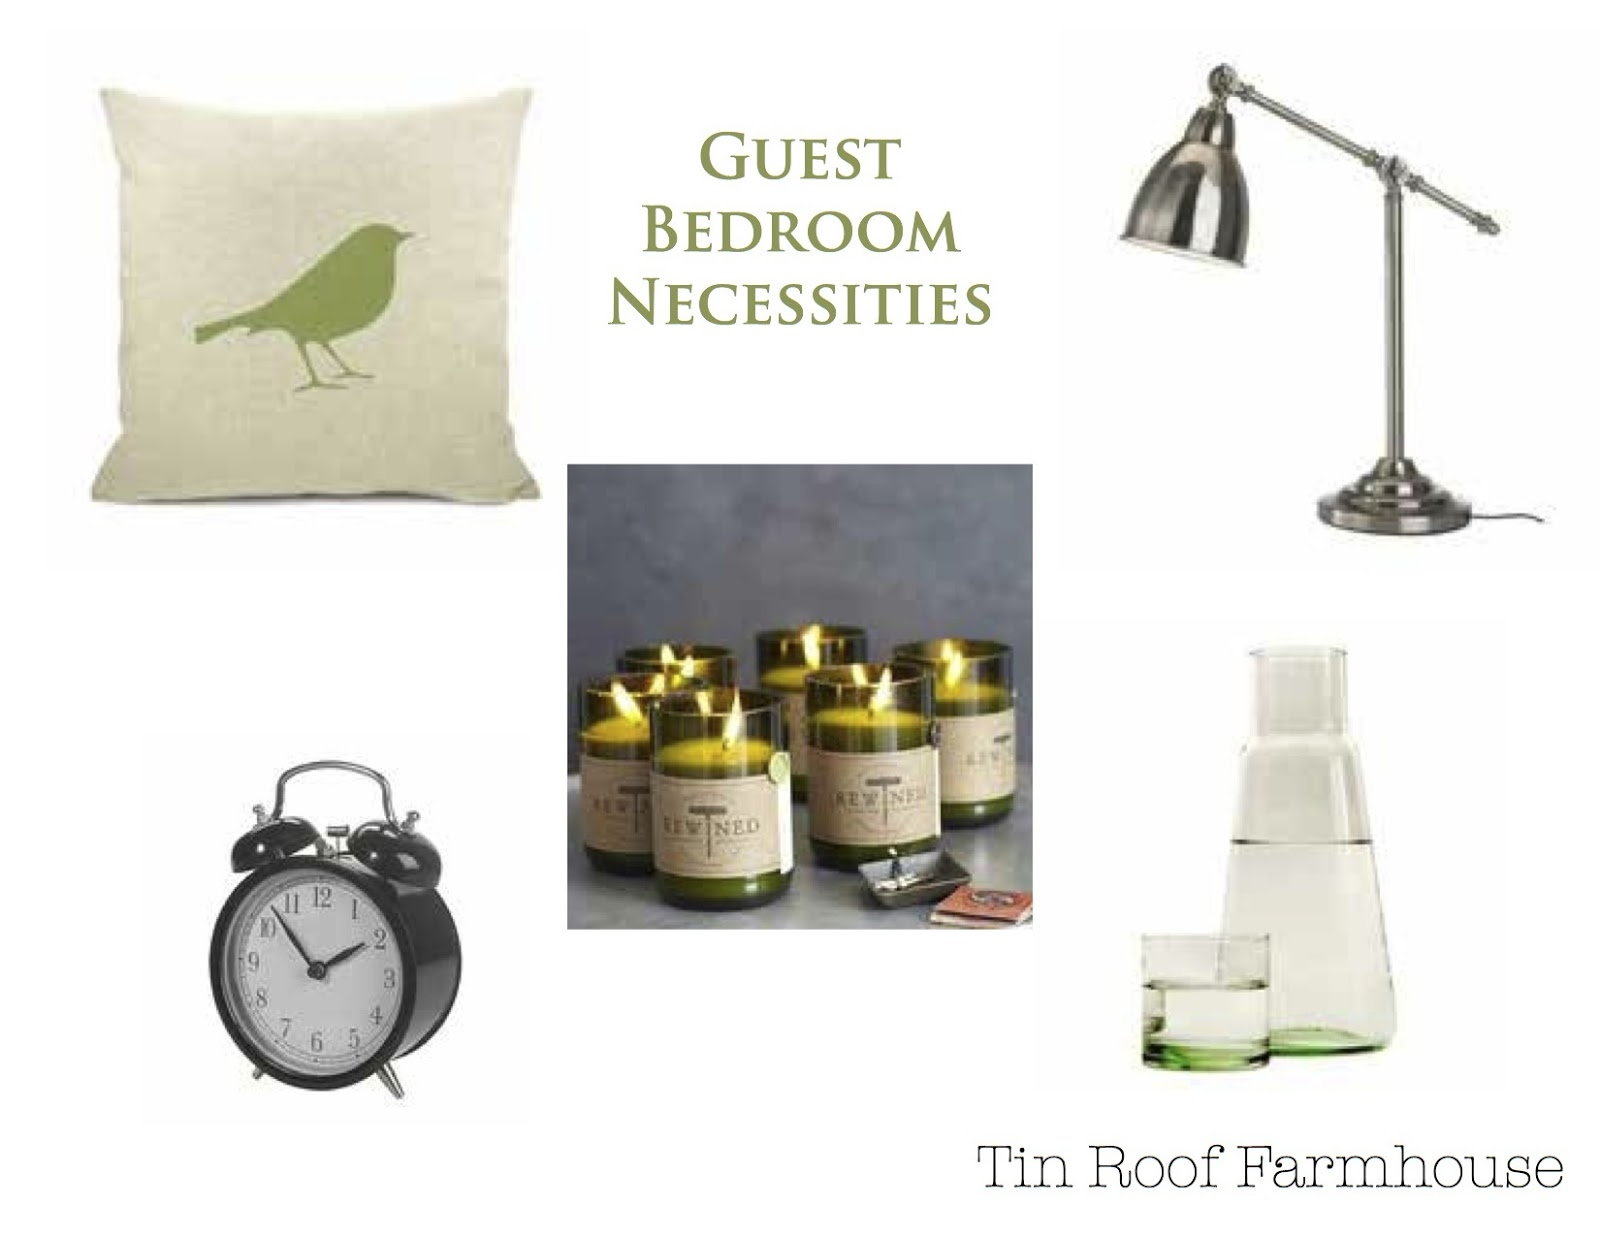 Tin roof farmhouse five faves for friday guest bedroom for Bedroom necessities